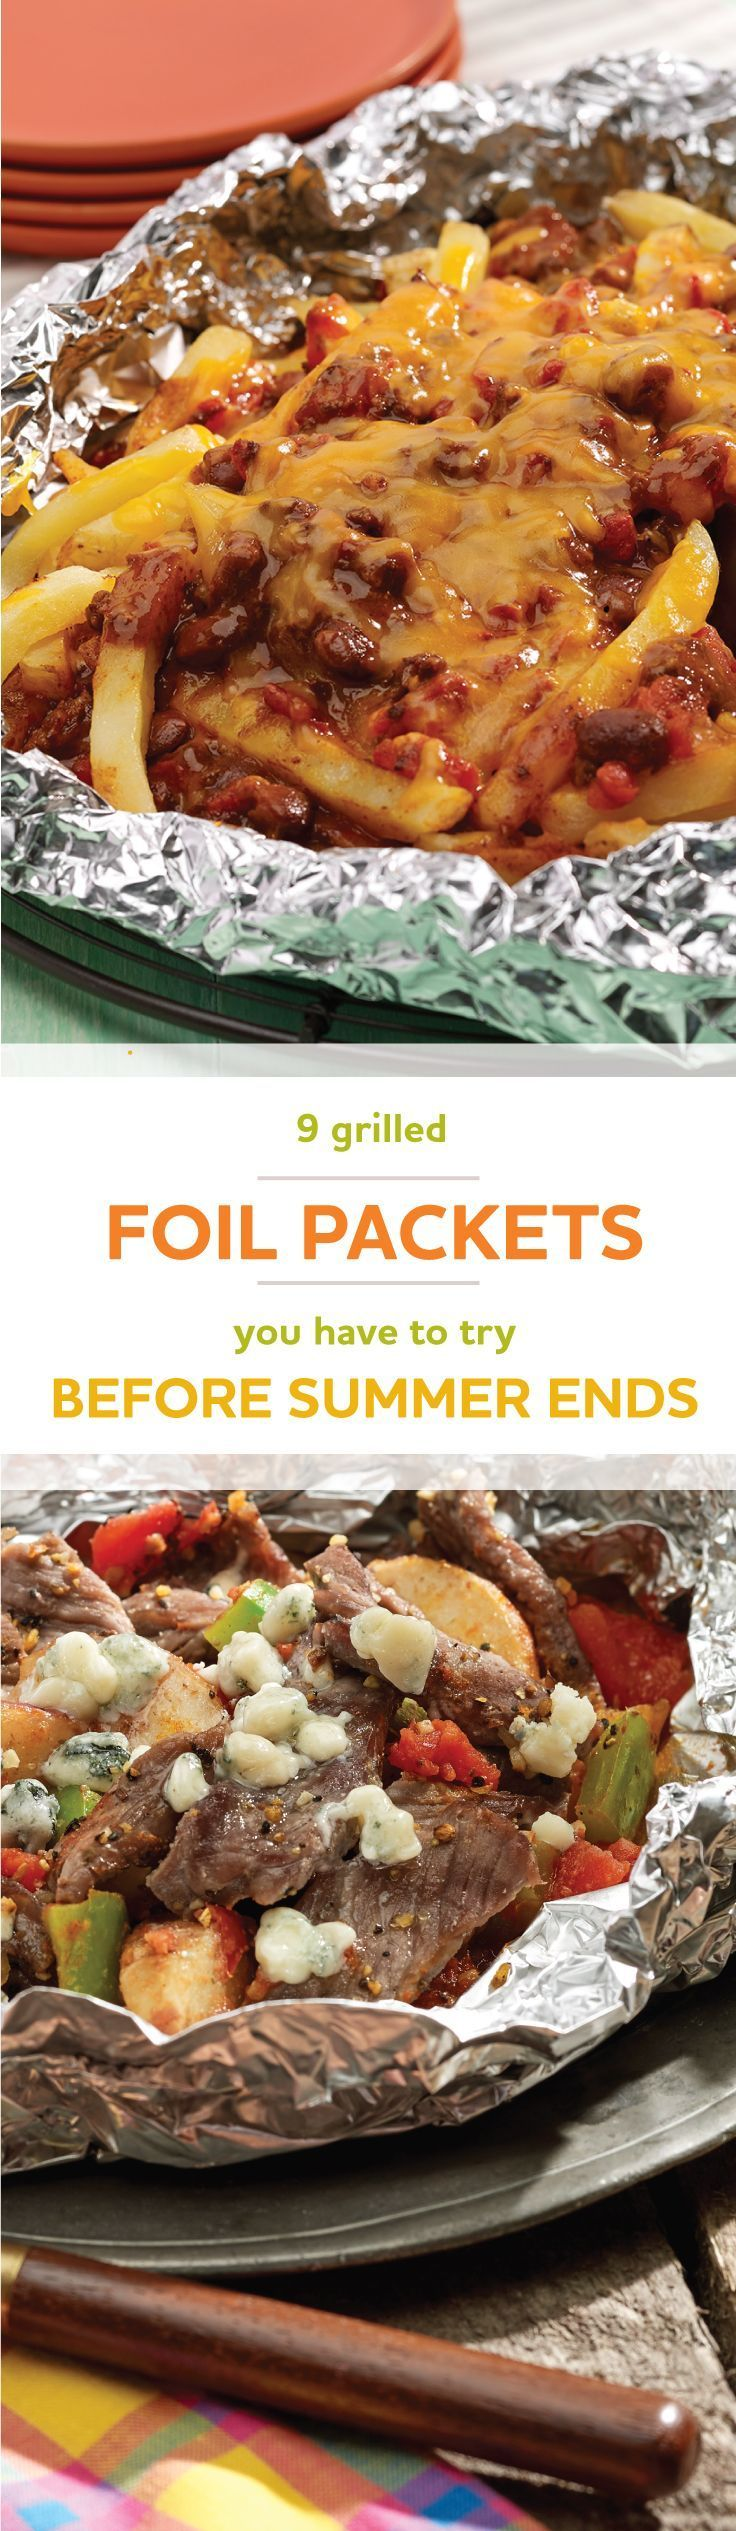 Photo of 8 foil package dinners that tidy up practically